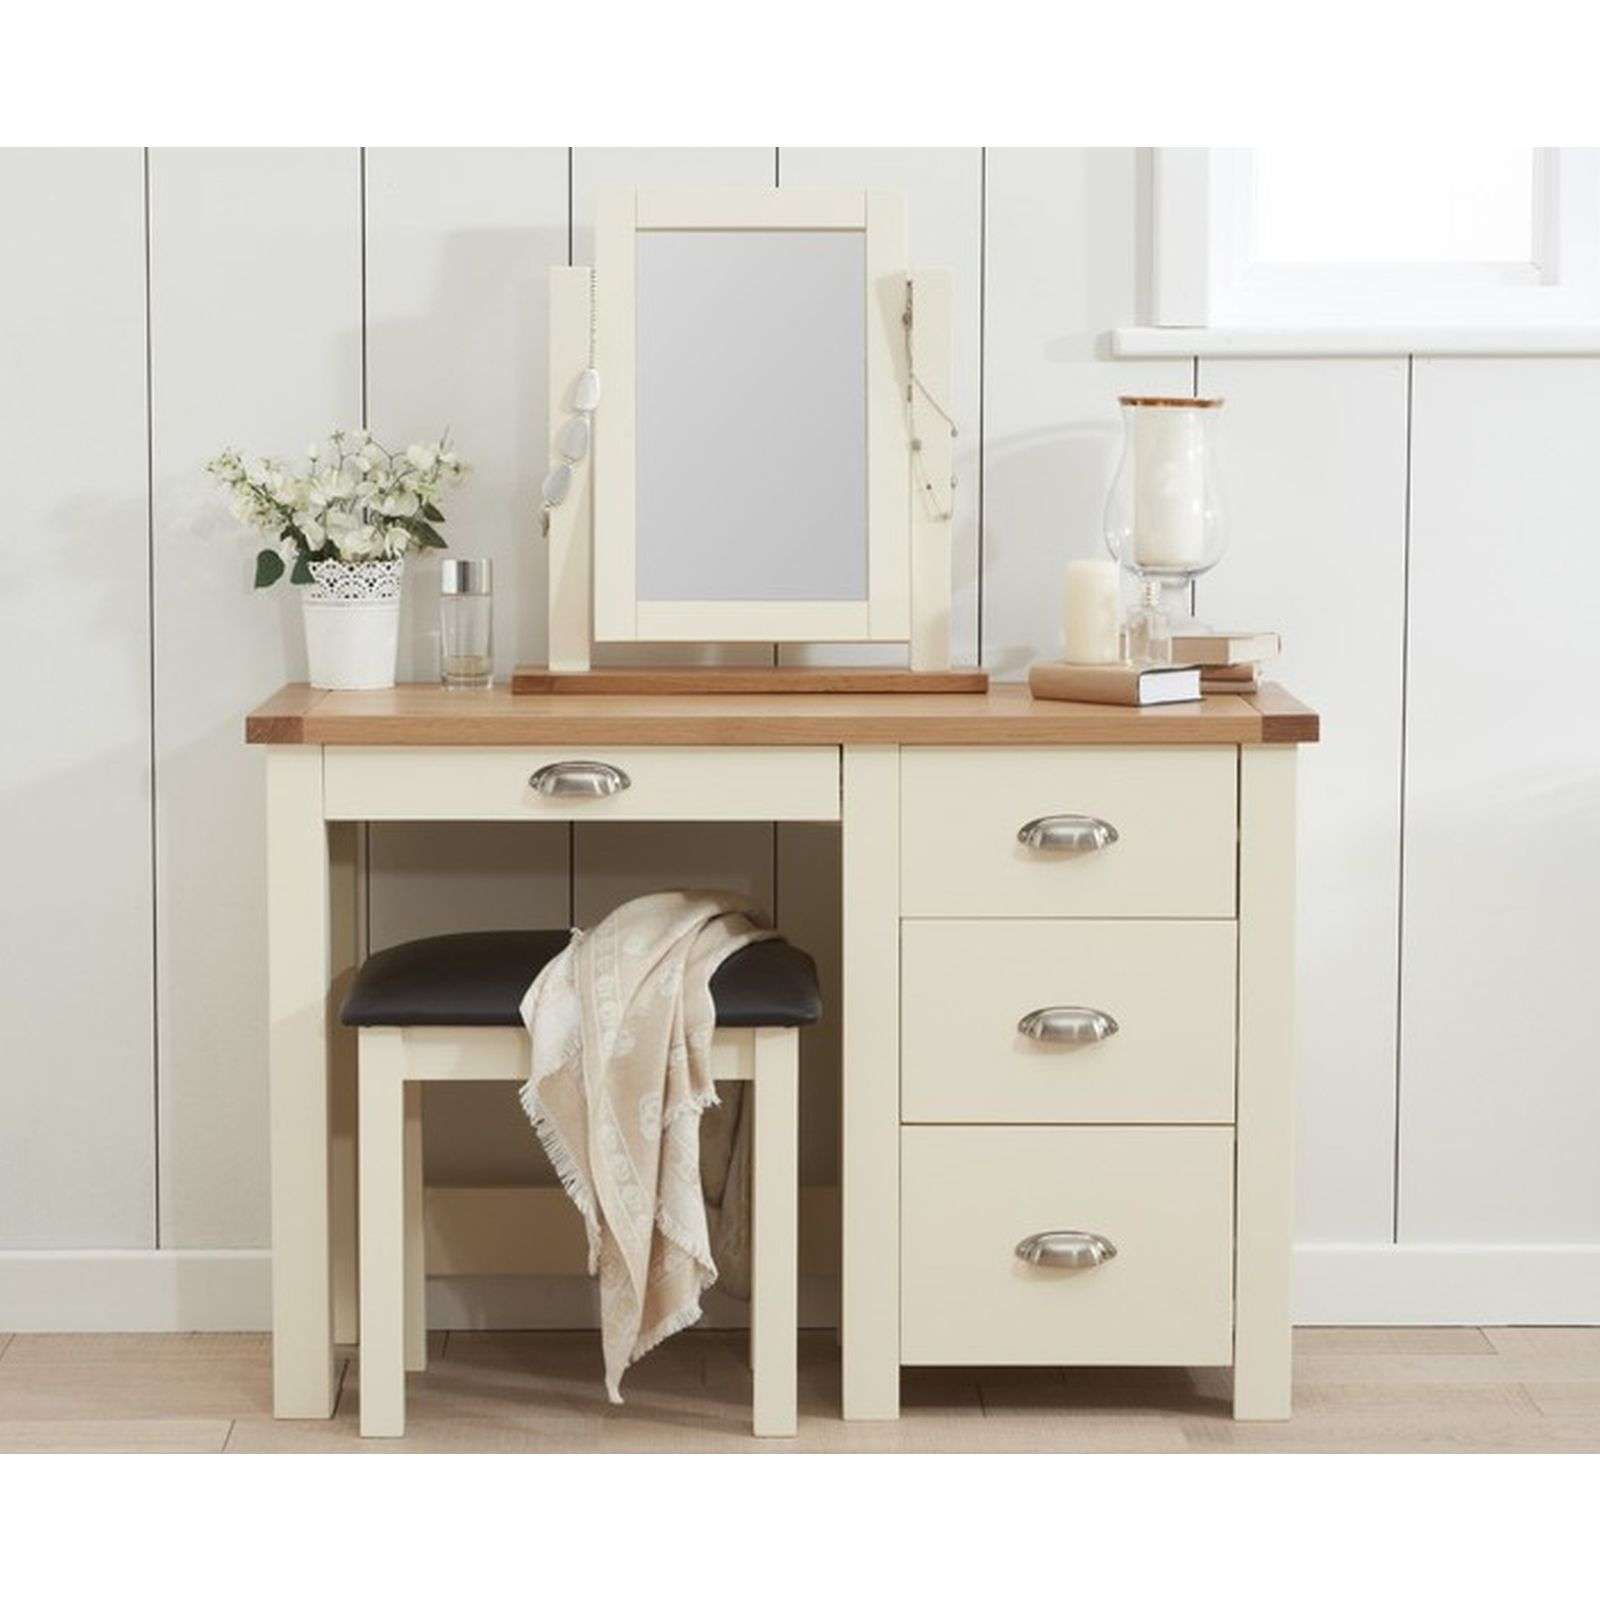 reputable site d3df0 af5cd Sandringham Cream Painted Dressing Table Set - Buy Now